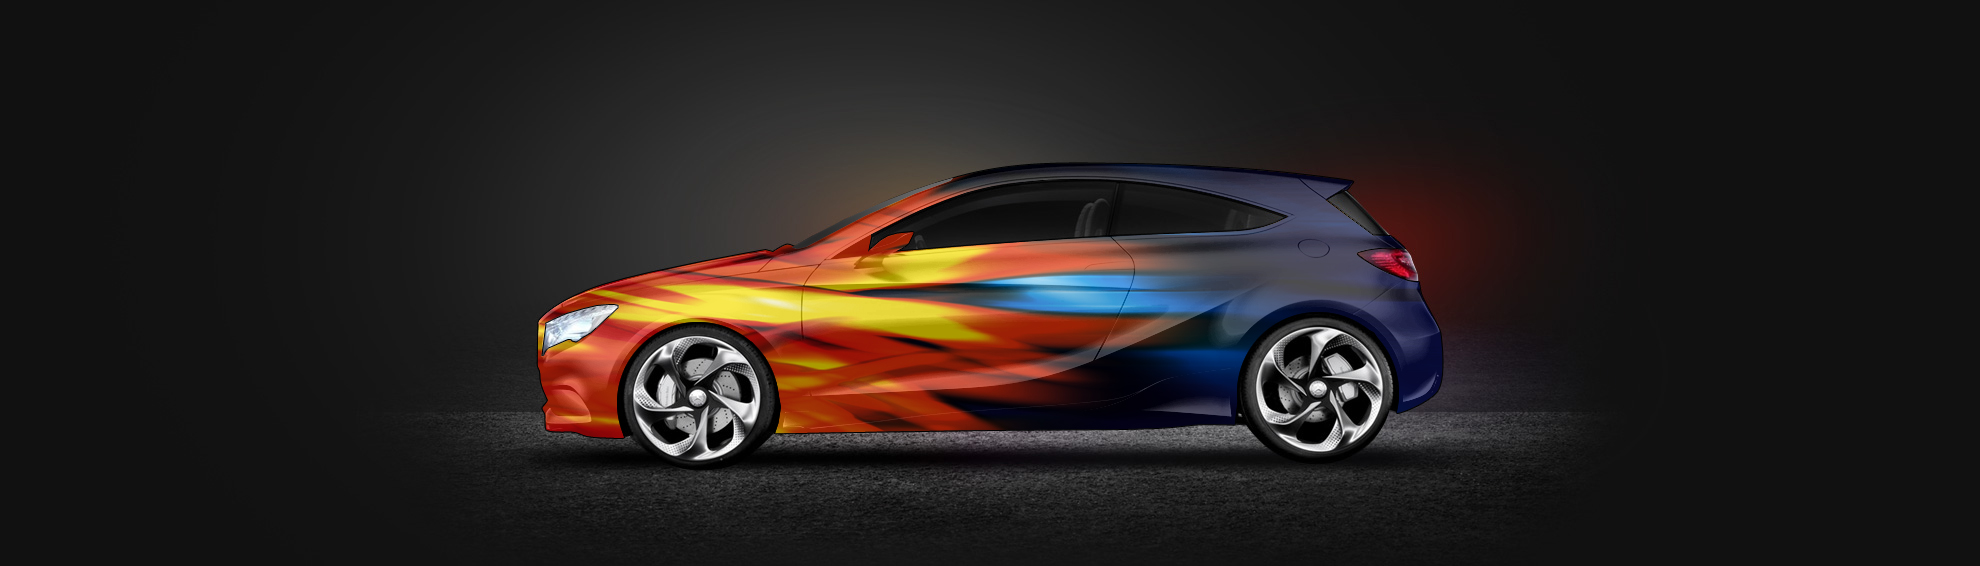 Automotive Wrap Films Market Expected to Reach USD 10.8 Billion by 2025